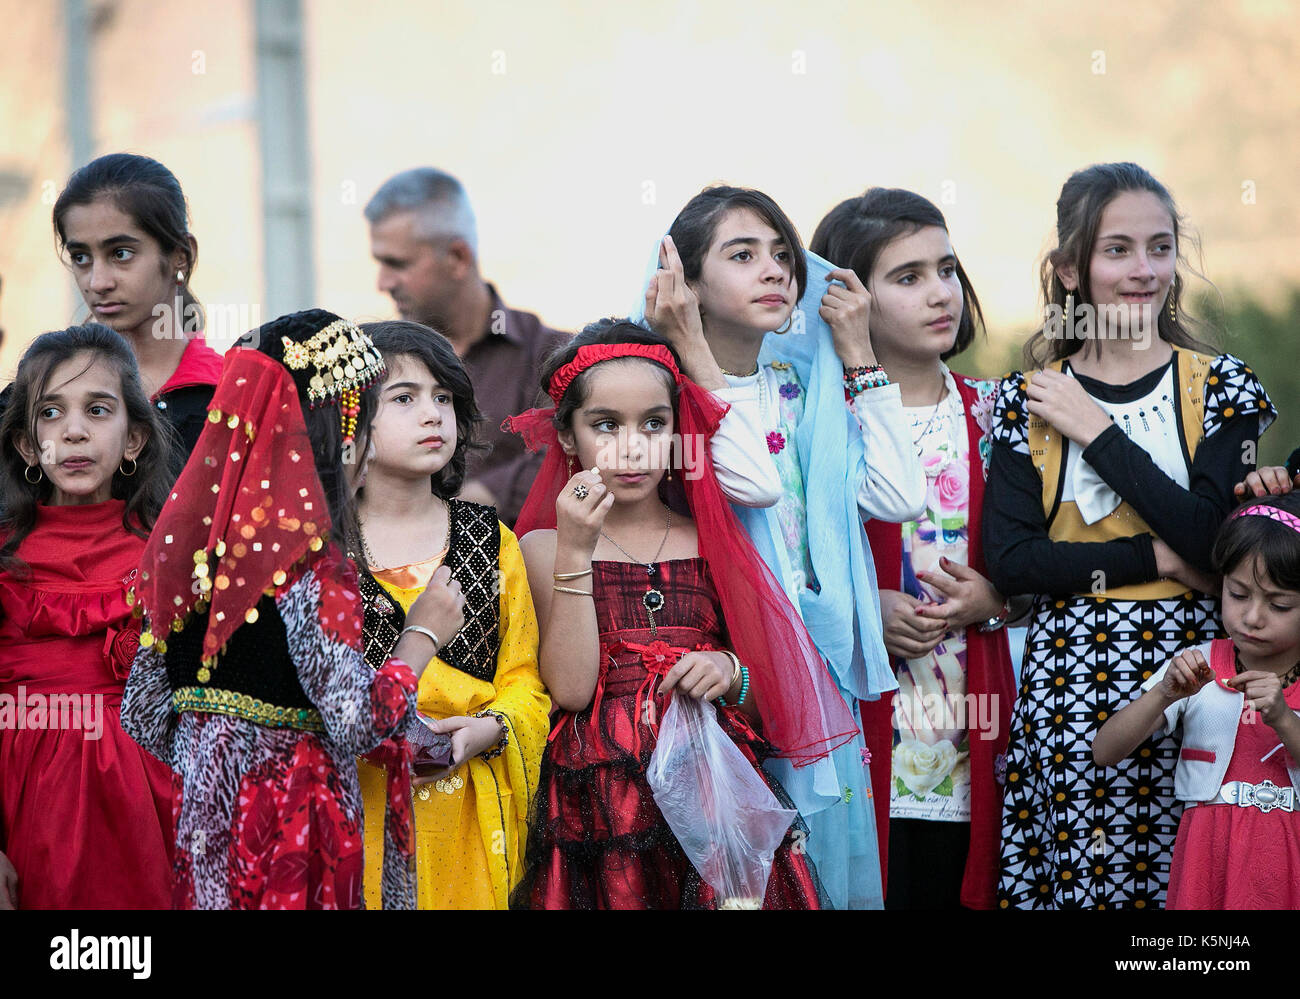 Marivan, Iran. 9th Sep, 2017. Iranian girls wearing local costumes watch a performance during the 12th International Street Theater Festival in Marivan, western Iran, Sept. 9, 2017. Credit: Ahmad Halabisaz/Xinhua/Alamy Live News - Stock Image